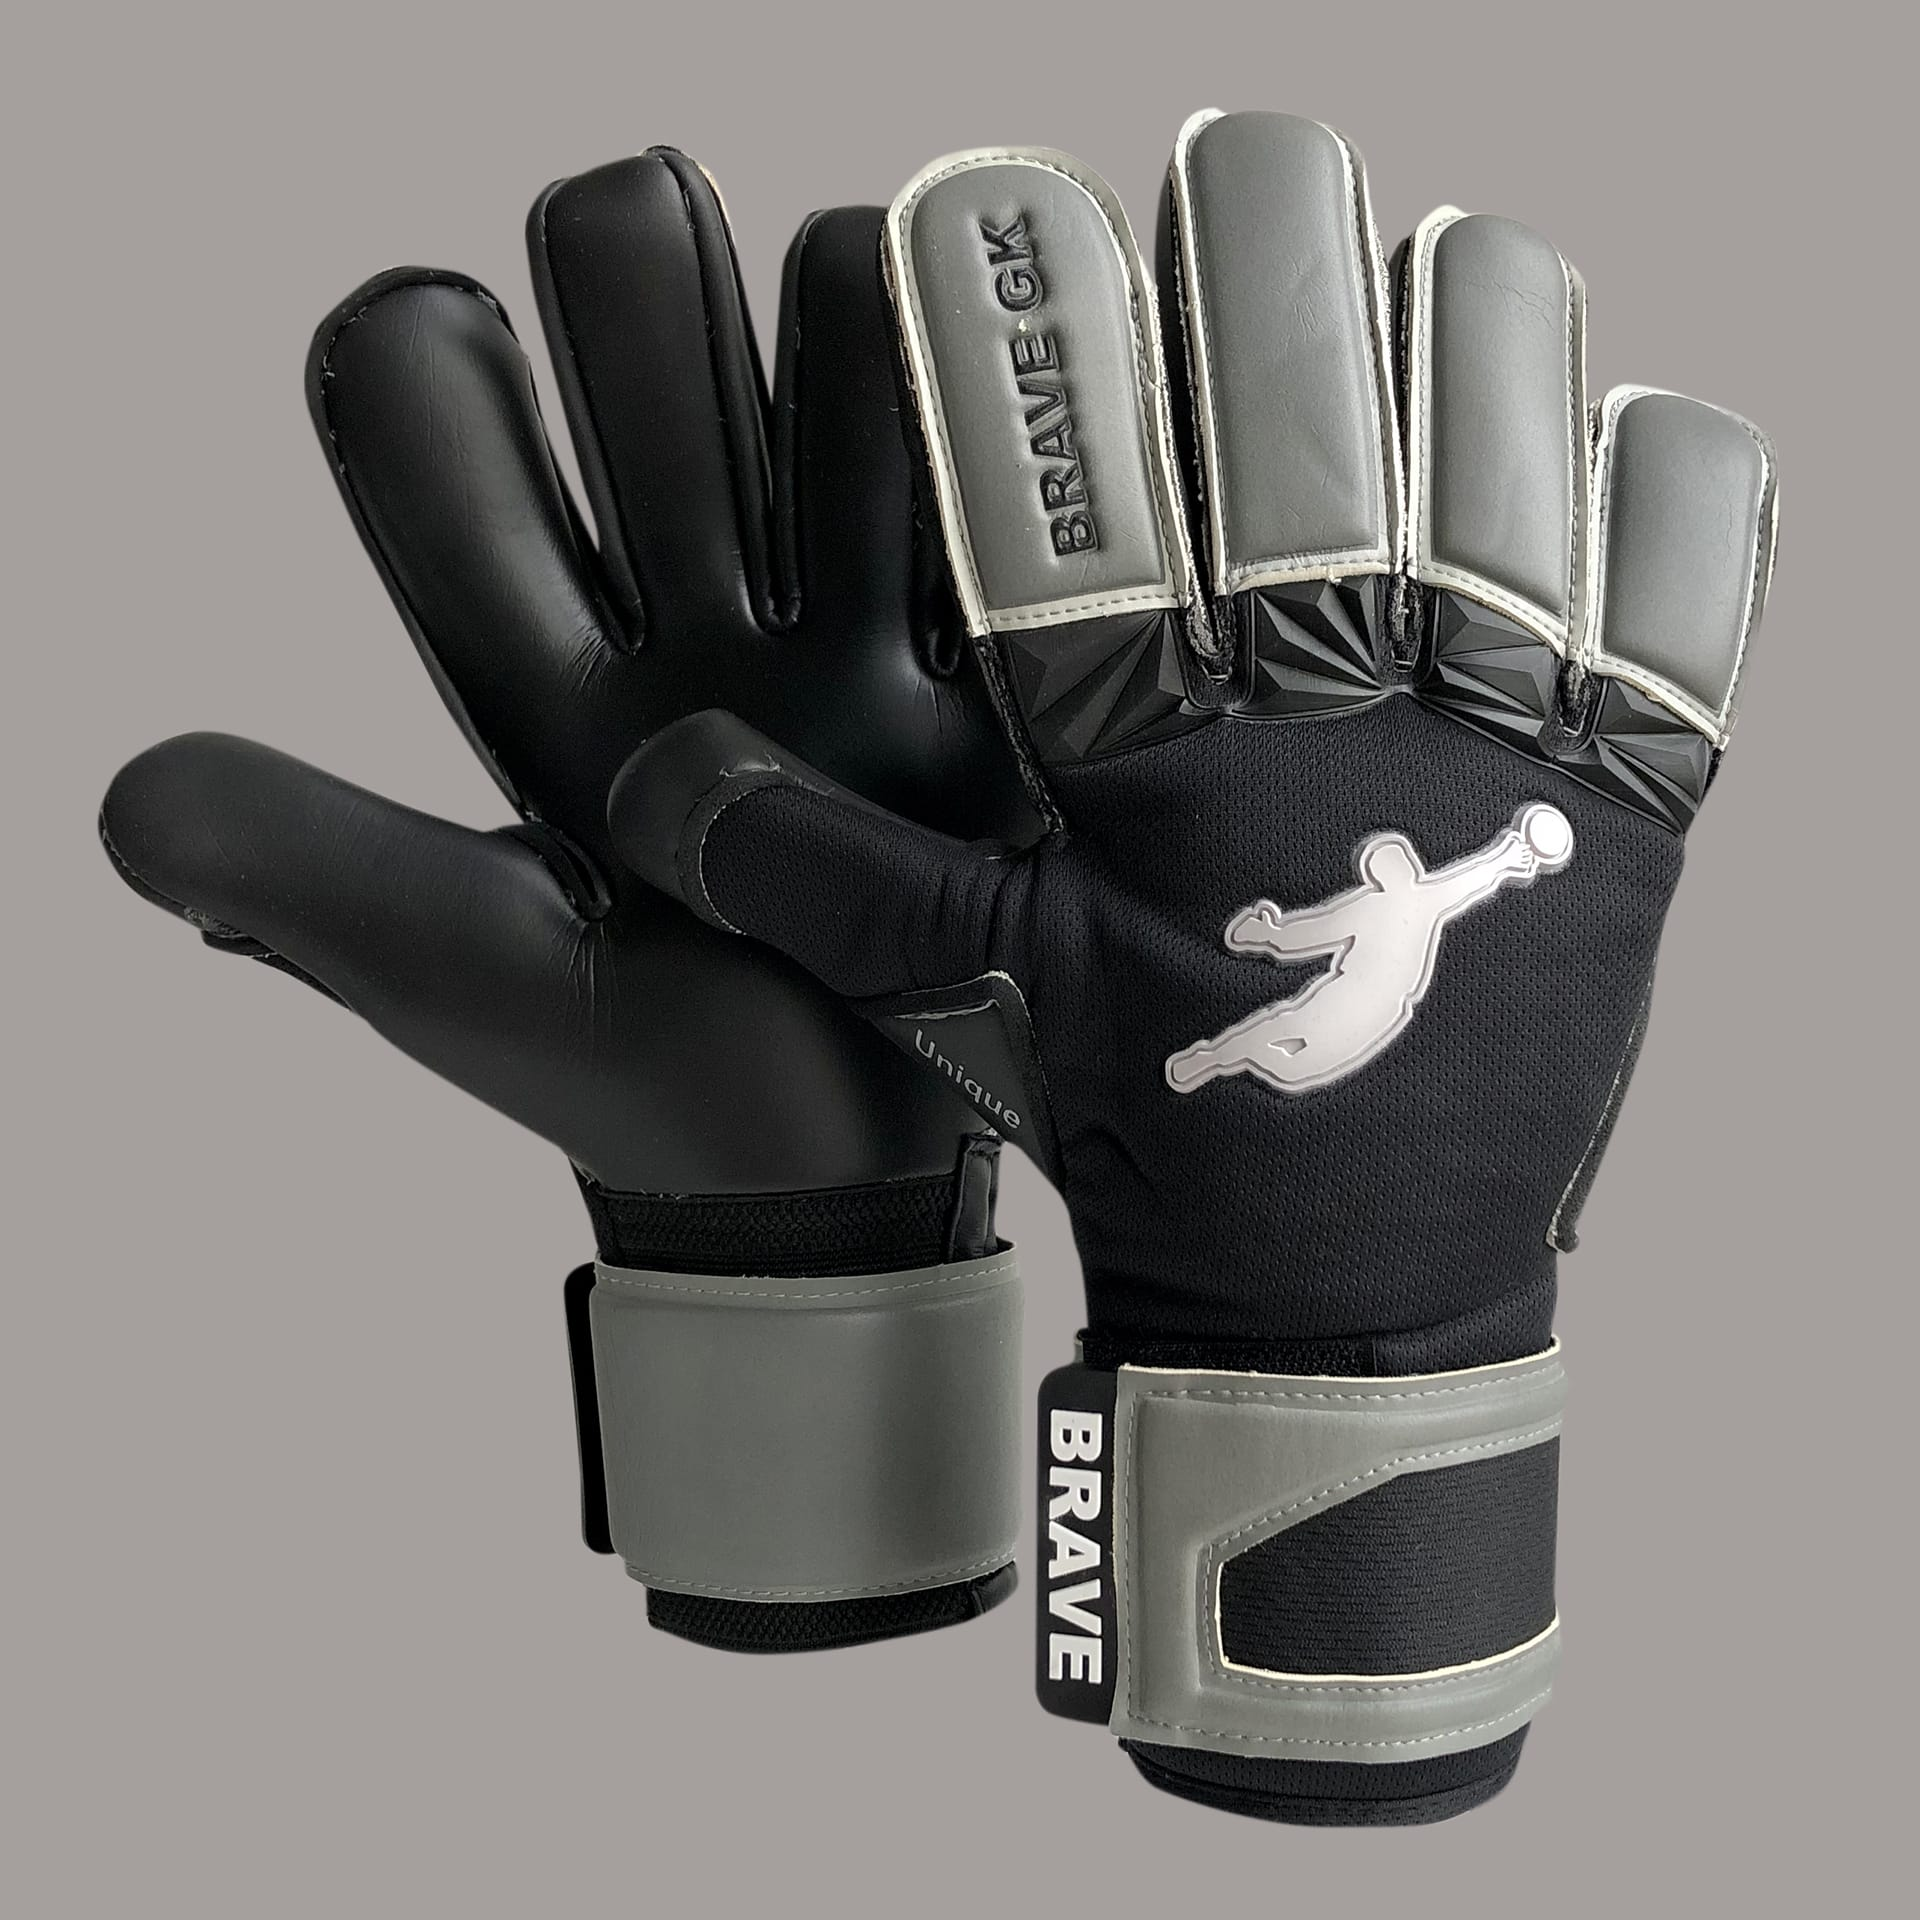 Brave GK Unique Graphite-0-Brave GK